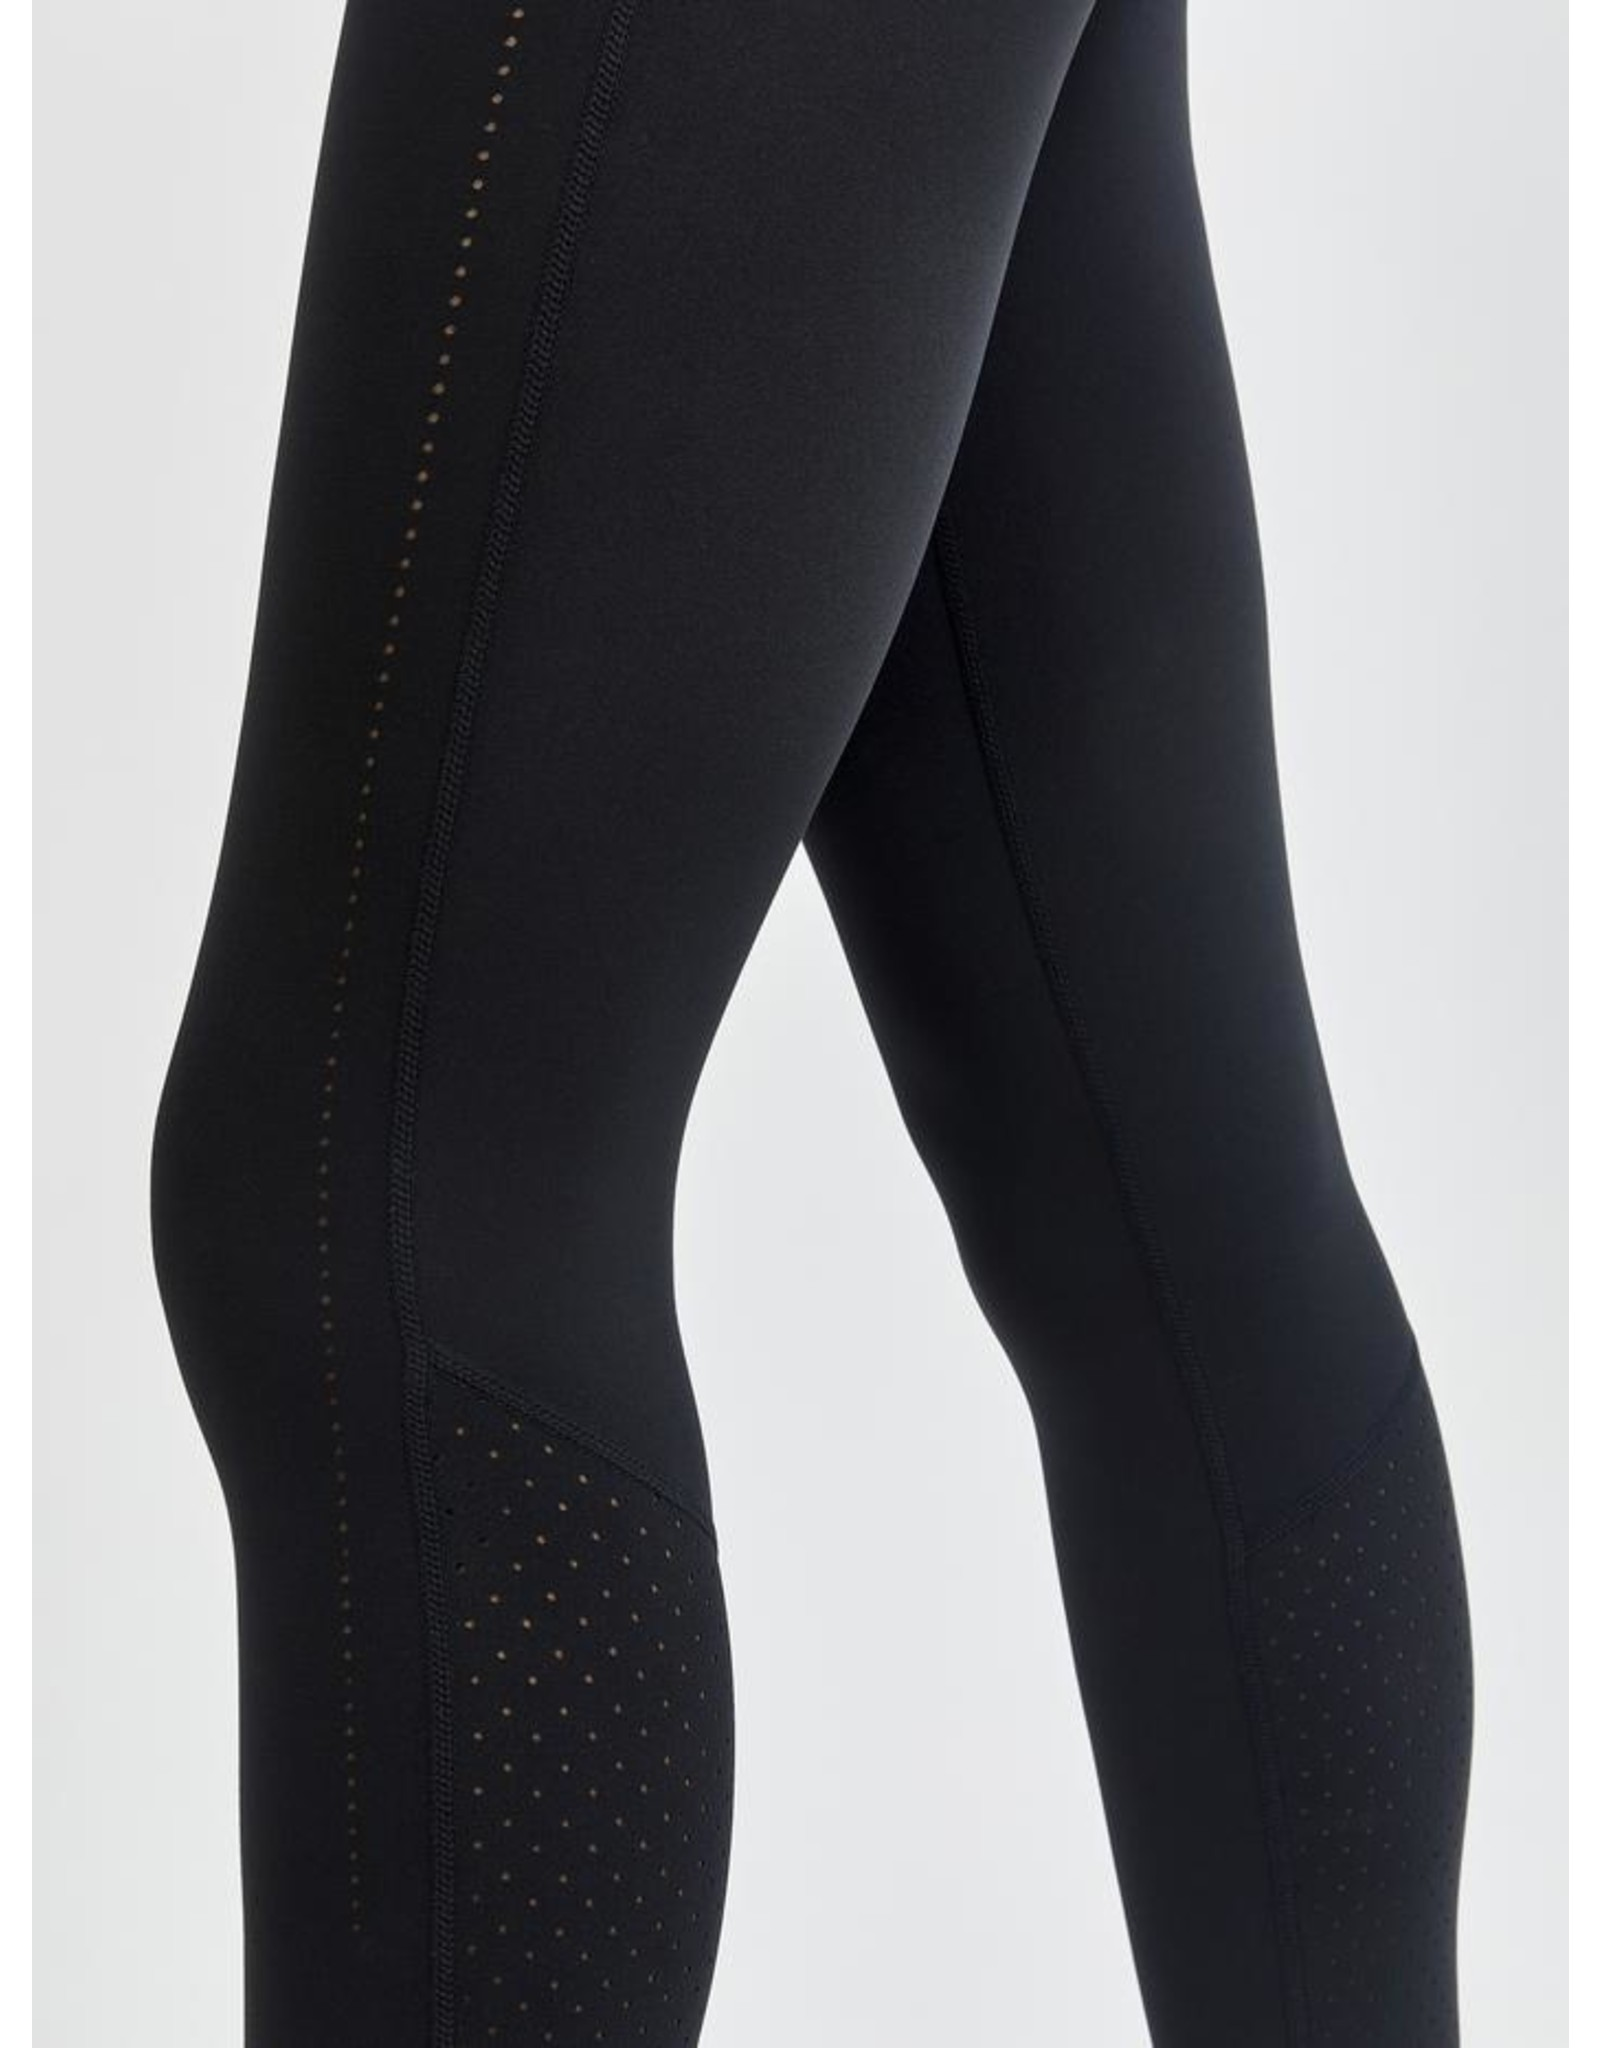 CRAFT 1910507 LEGGINGS ADV CHARGE PERFORATED